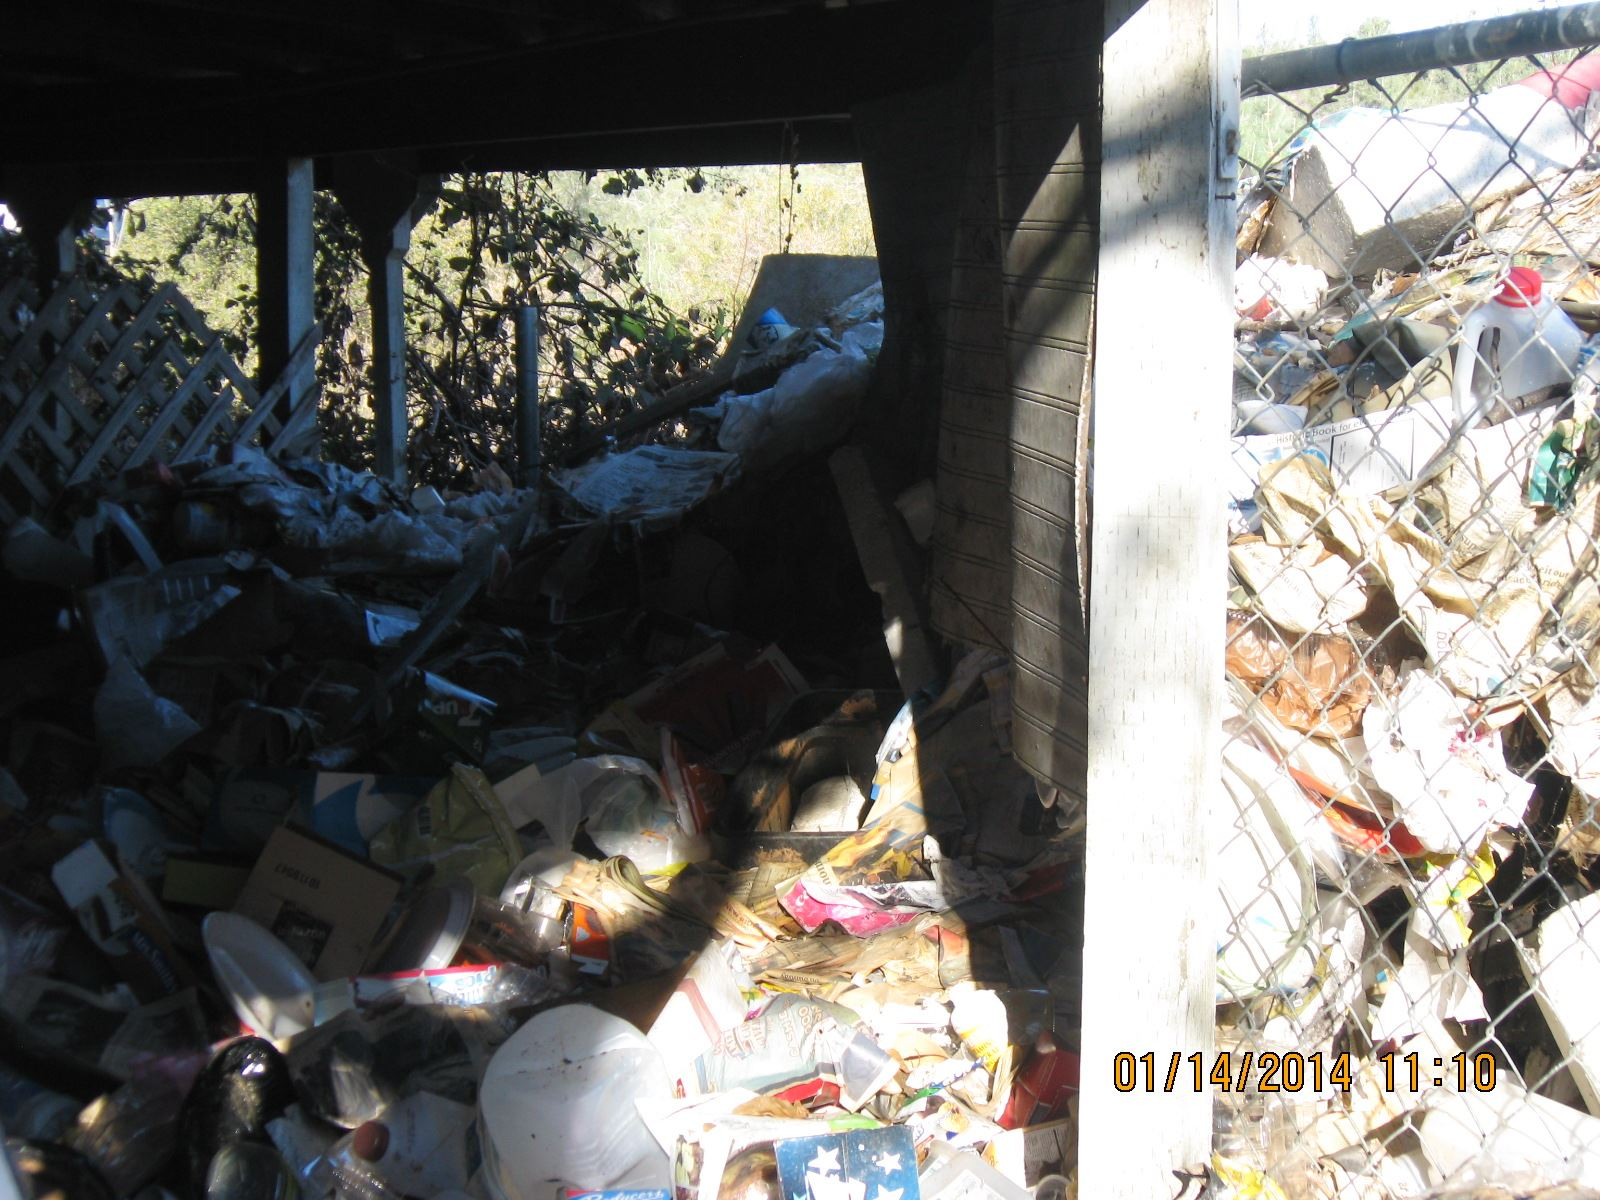 A pile of garbage piled up next to a house.